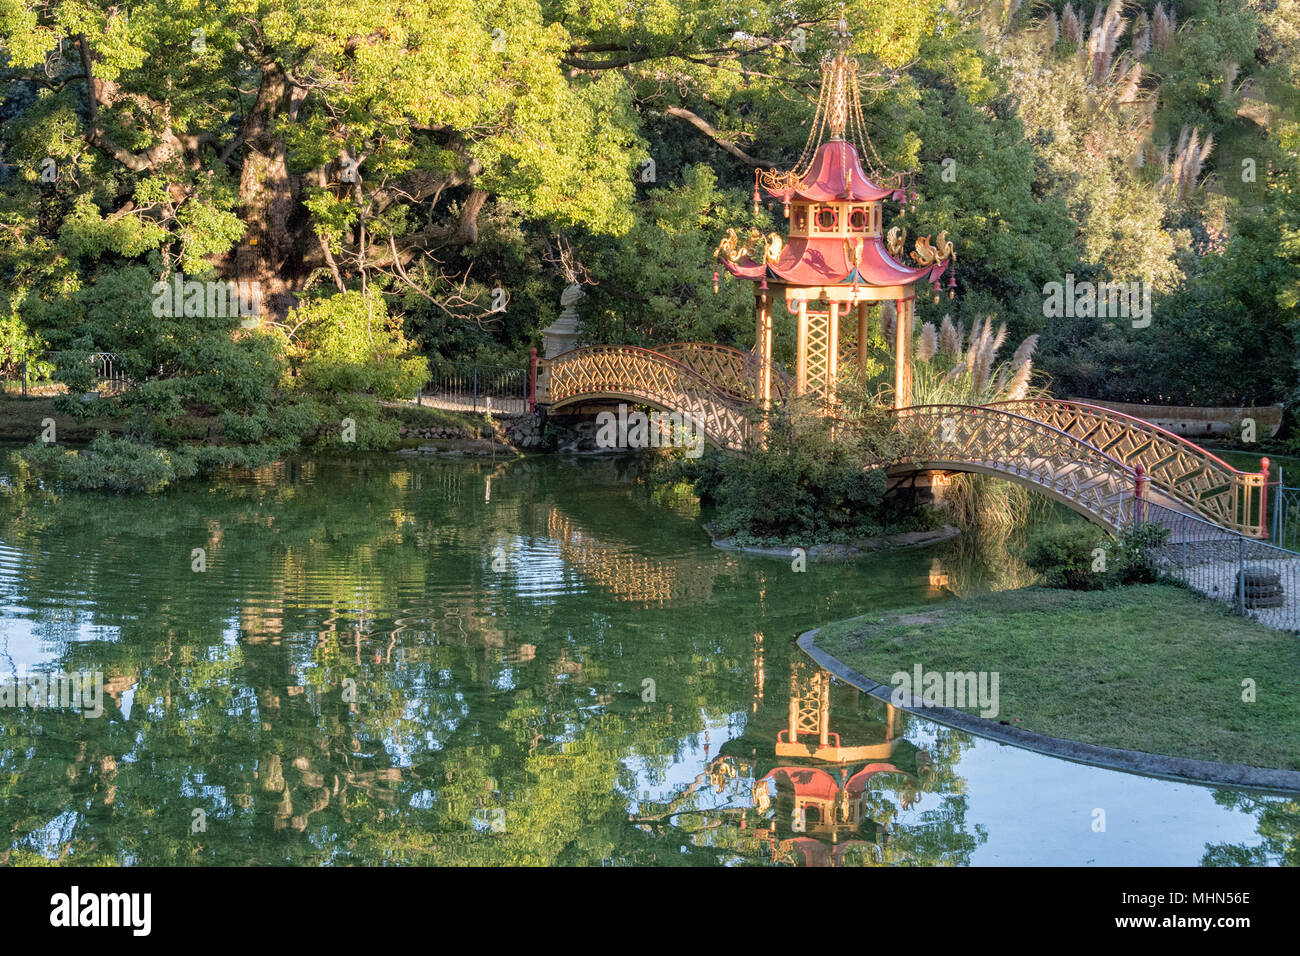 Chinese Garden Bridge Reflection View Stock Photo 183017926